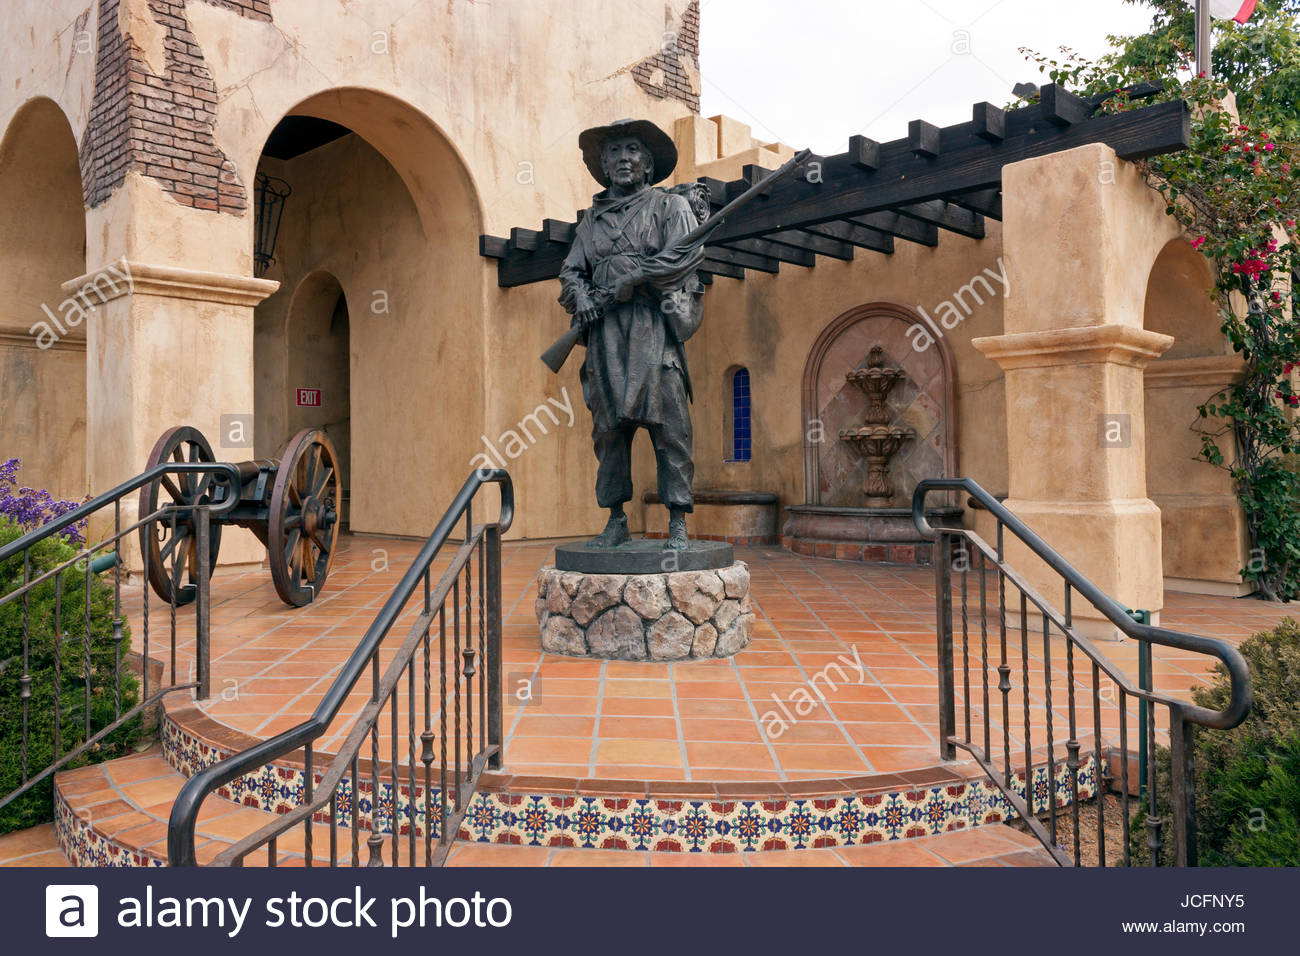 Seaport Village San Diego, Statue of soldier at the Mormon Battalion historic site in Old ...